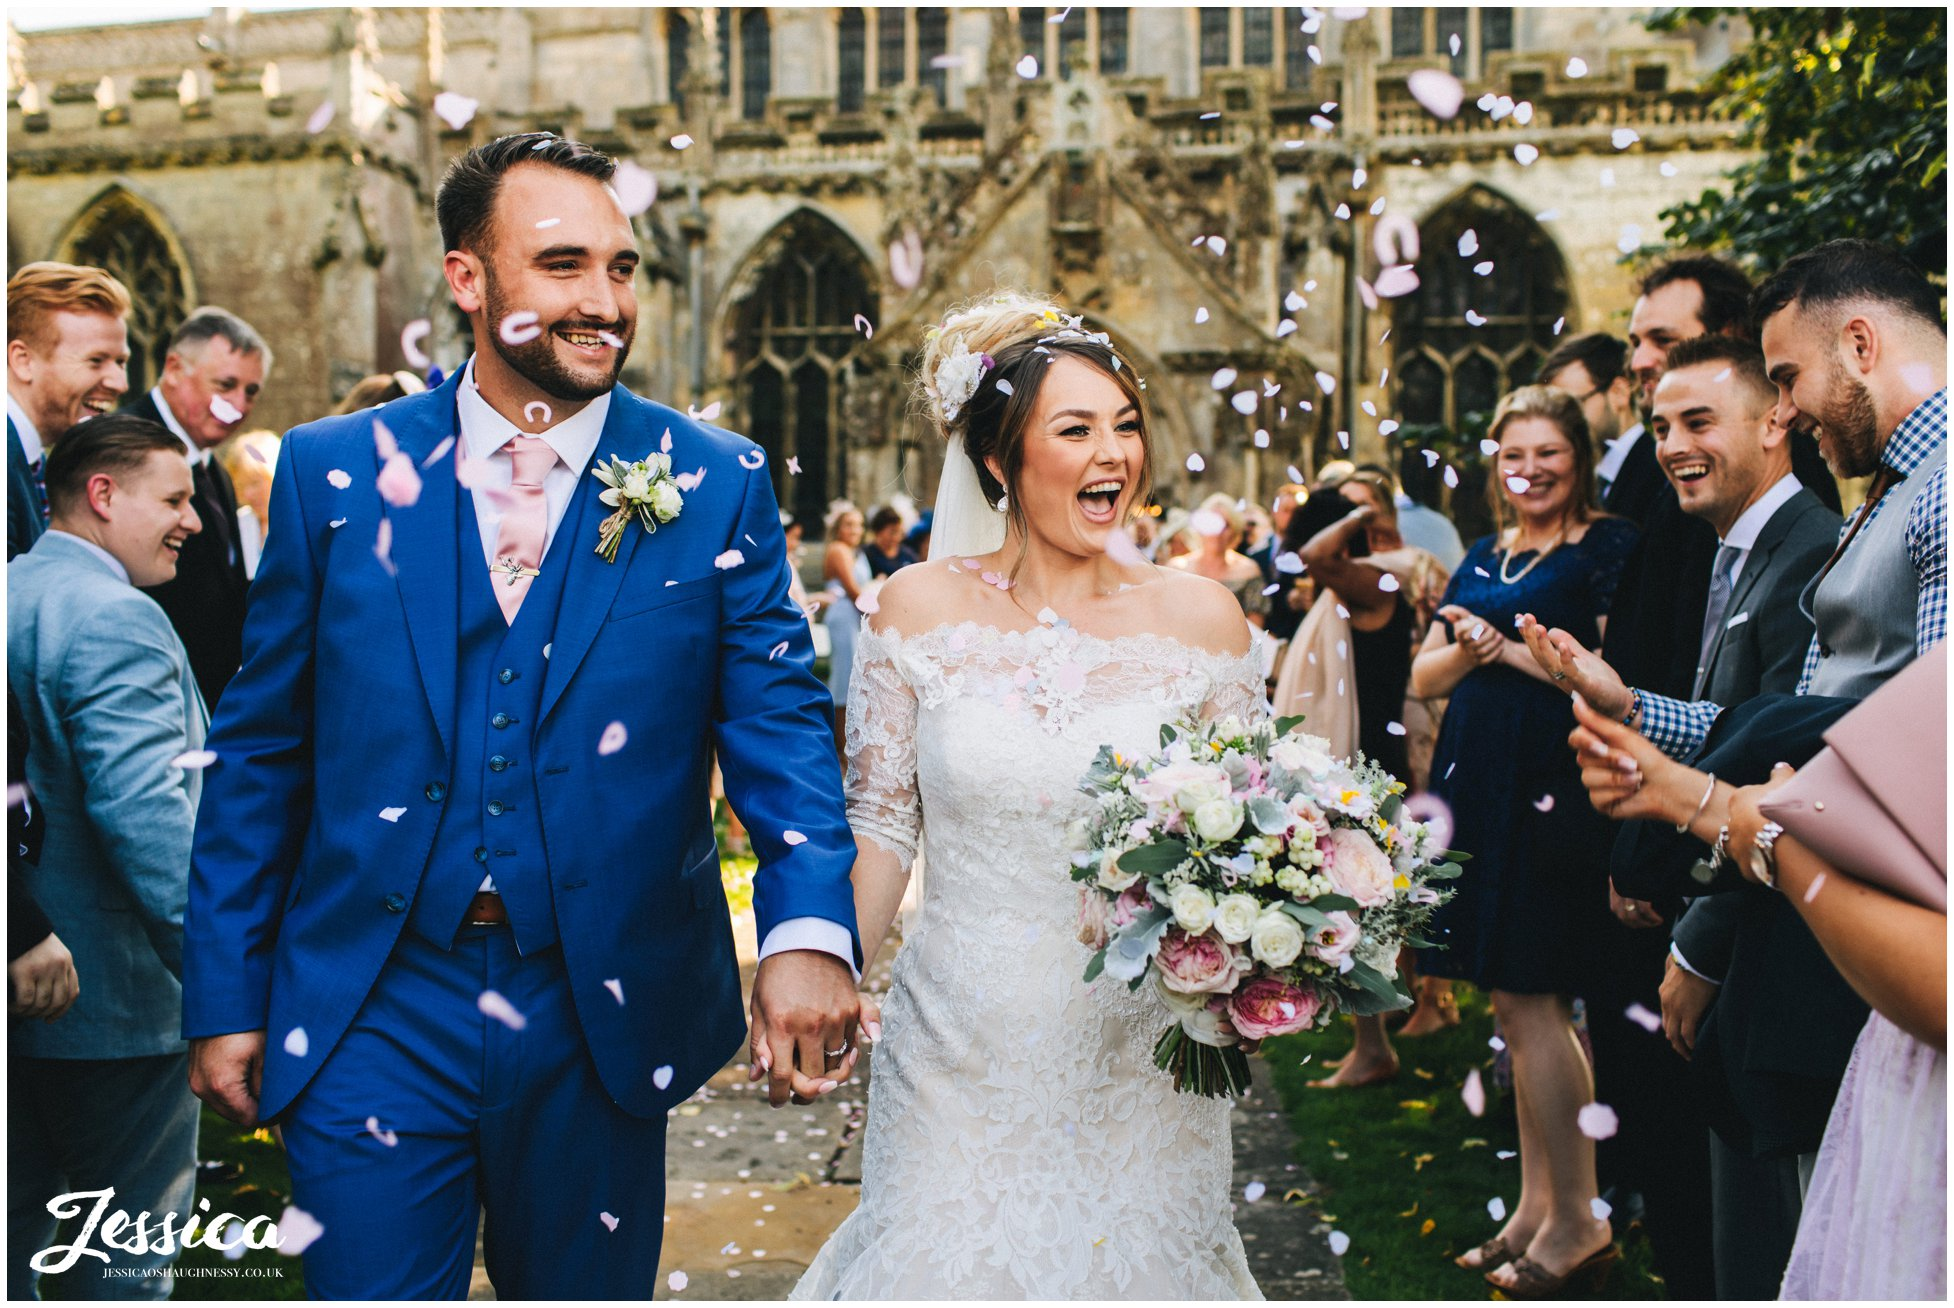 the couple are showered with confetti by their friends and family